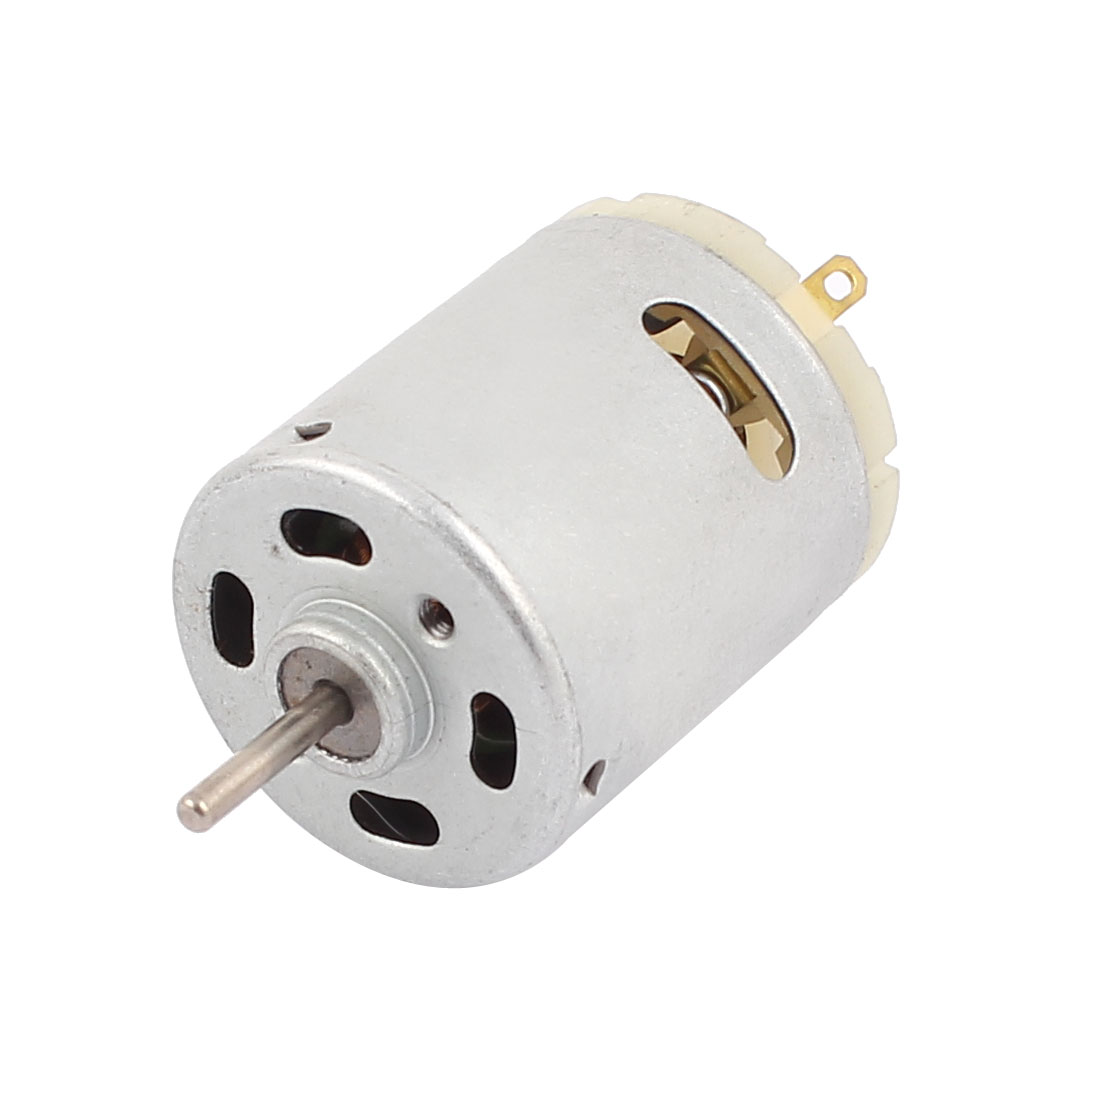 DC 12-24V 19200RPM Mini Magnetic Motor for Smart Cars DIY Toys